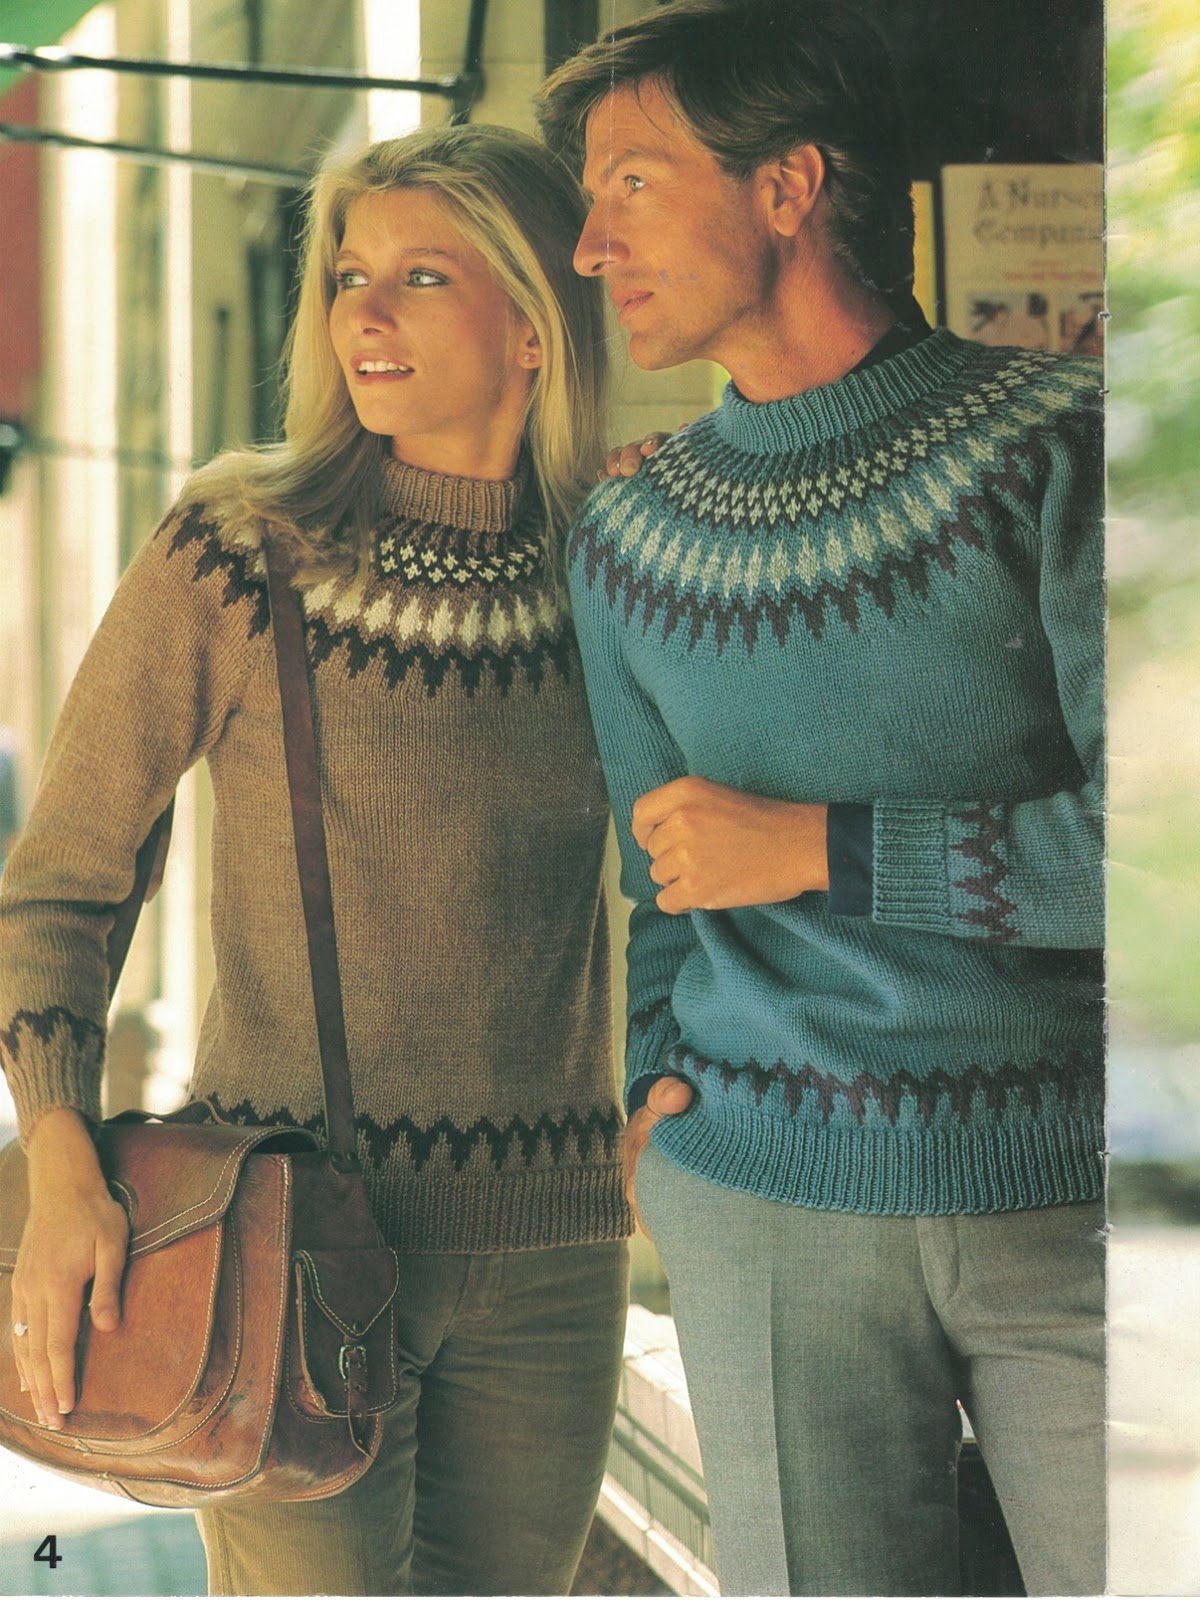 The Vintage Pattern Files: 1980s Knitting - Patons No. 671 Fair Isle Fashion ...